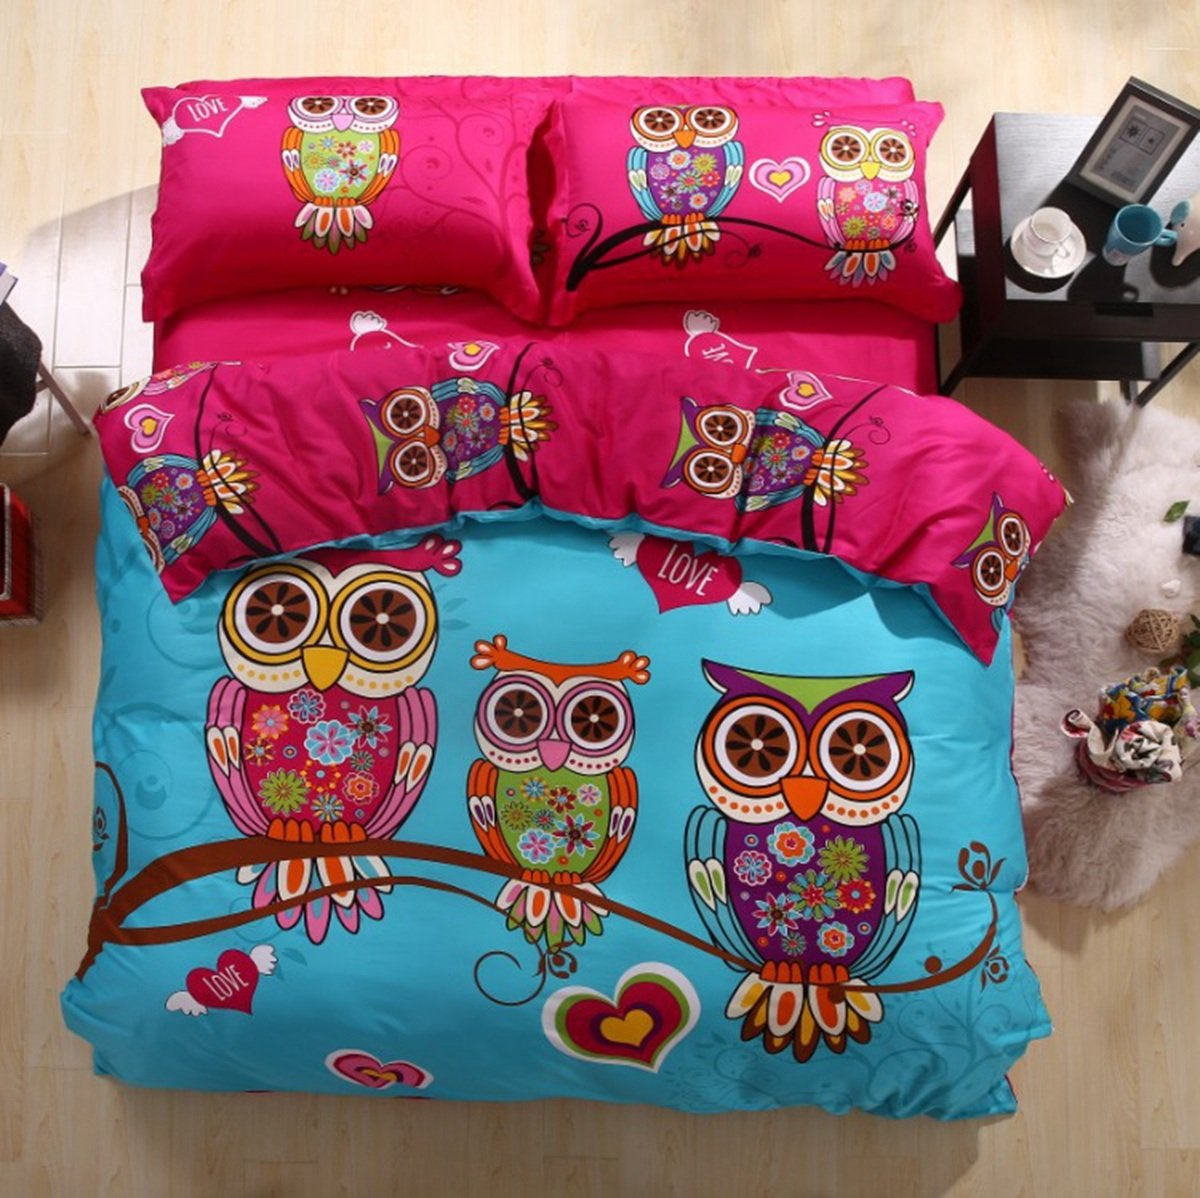 DMLSH Cartoon Animal Owl Quilt Cover Bedspread Set Comforter Pillow Case Children Quilt Red and Blue (Size : Single)